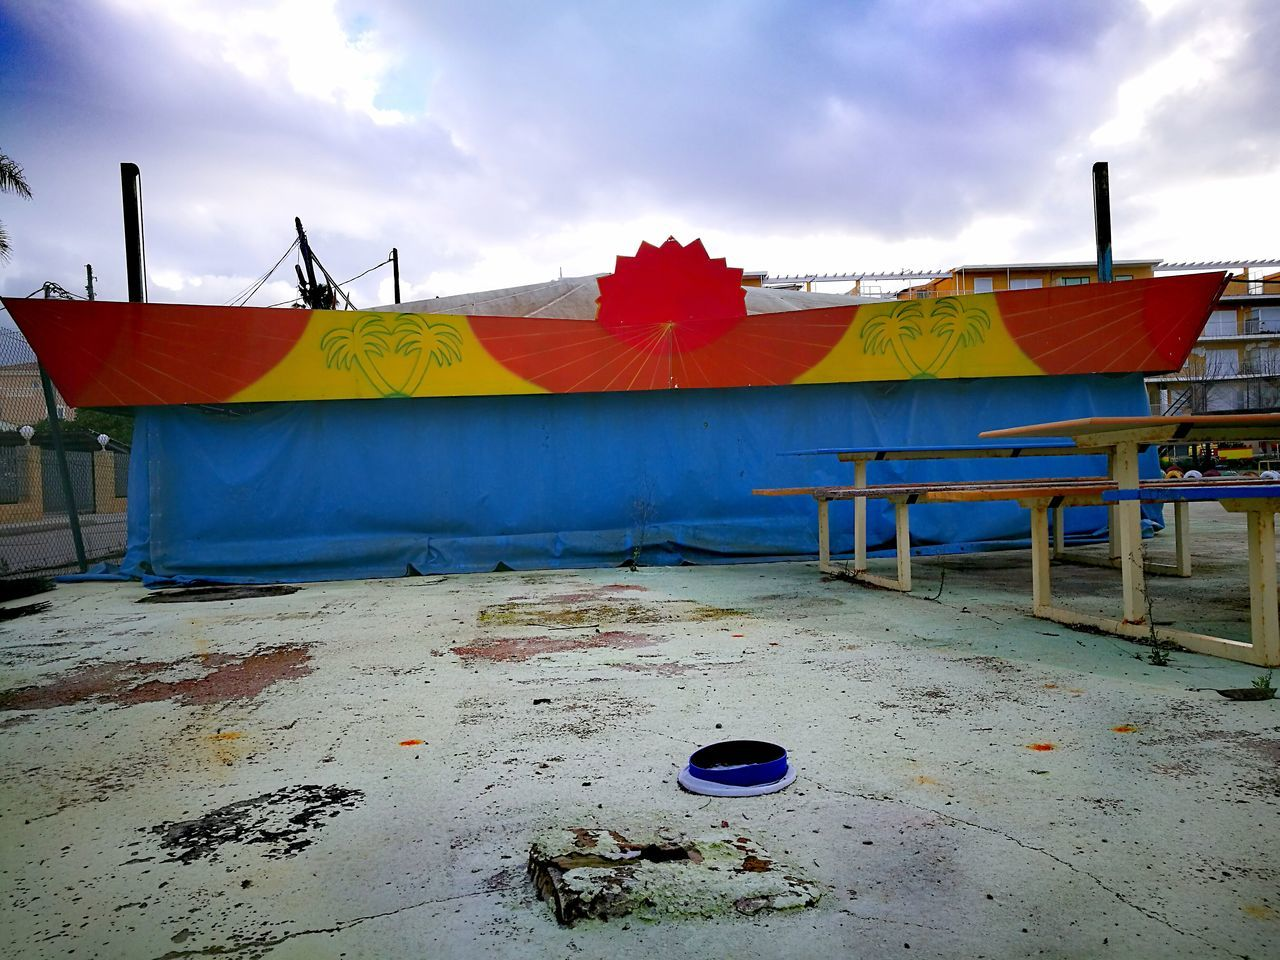 Cloud - Sky Sky Multi Colored City No People Outdoors Day Architecture Building Exterior Street Photography Finding New Frontiers Abandoned & Derelict Abandoned Places Outdoor Cityscape Hat On Pavement Architecture Traveling Home For The Holidays